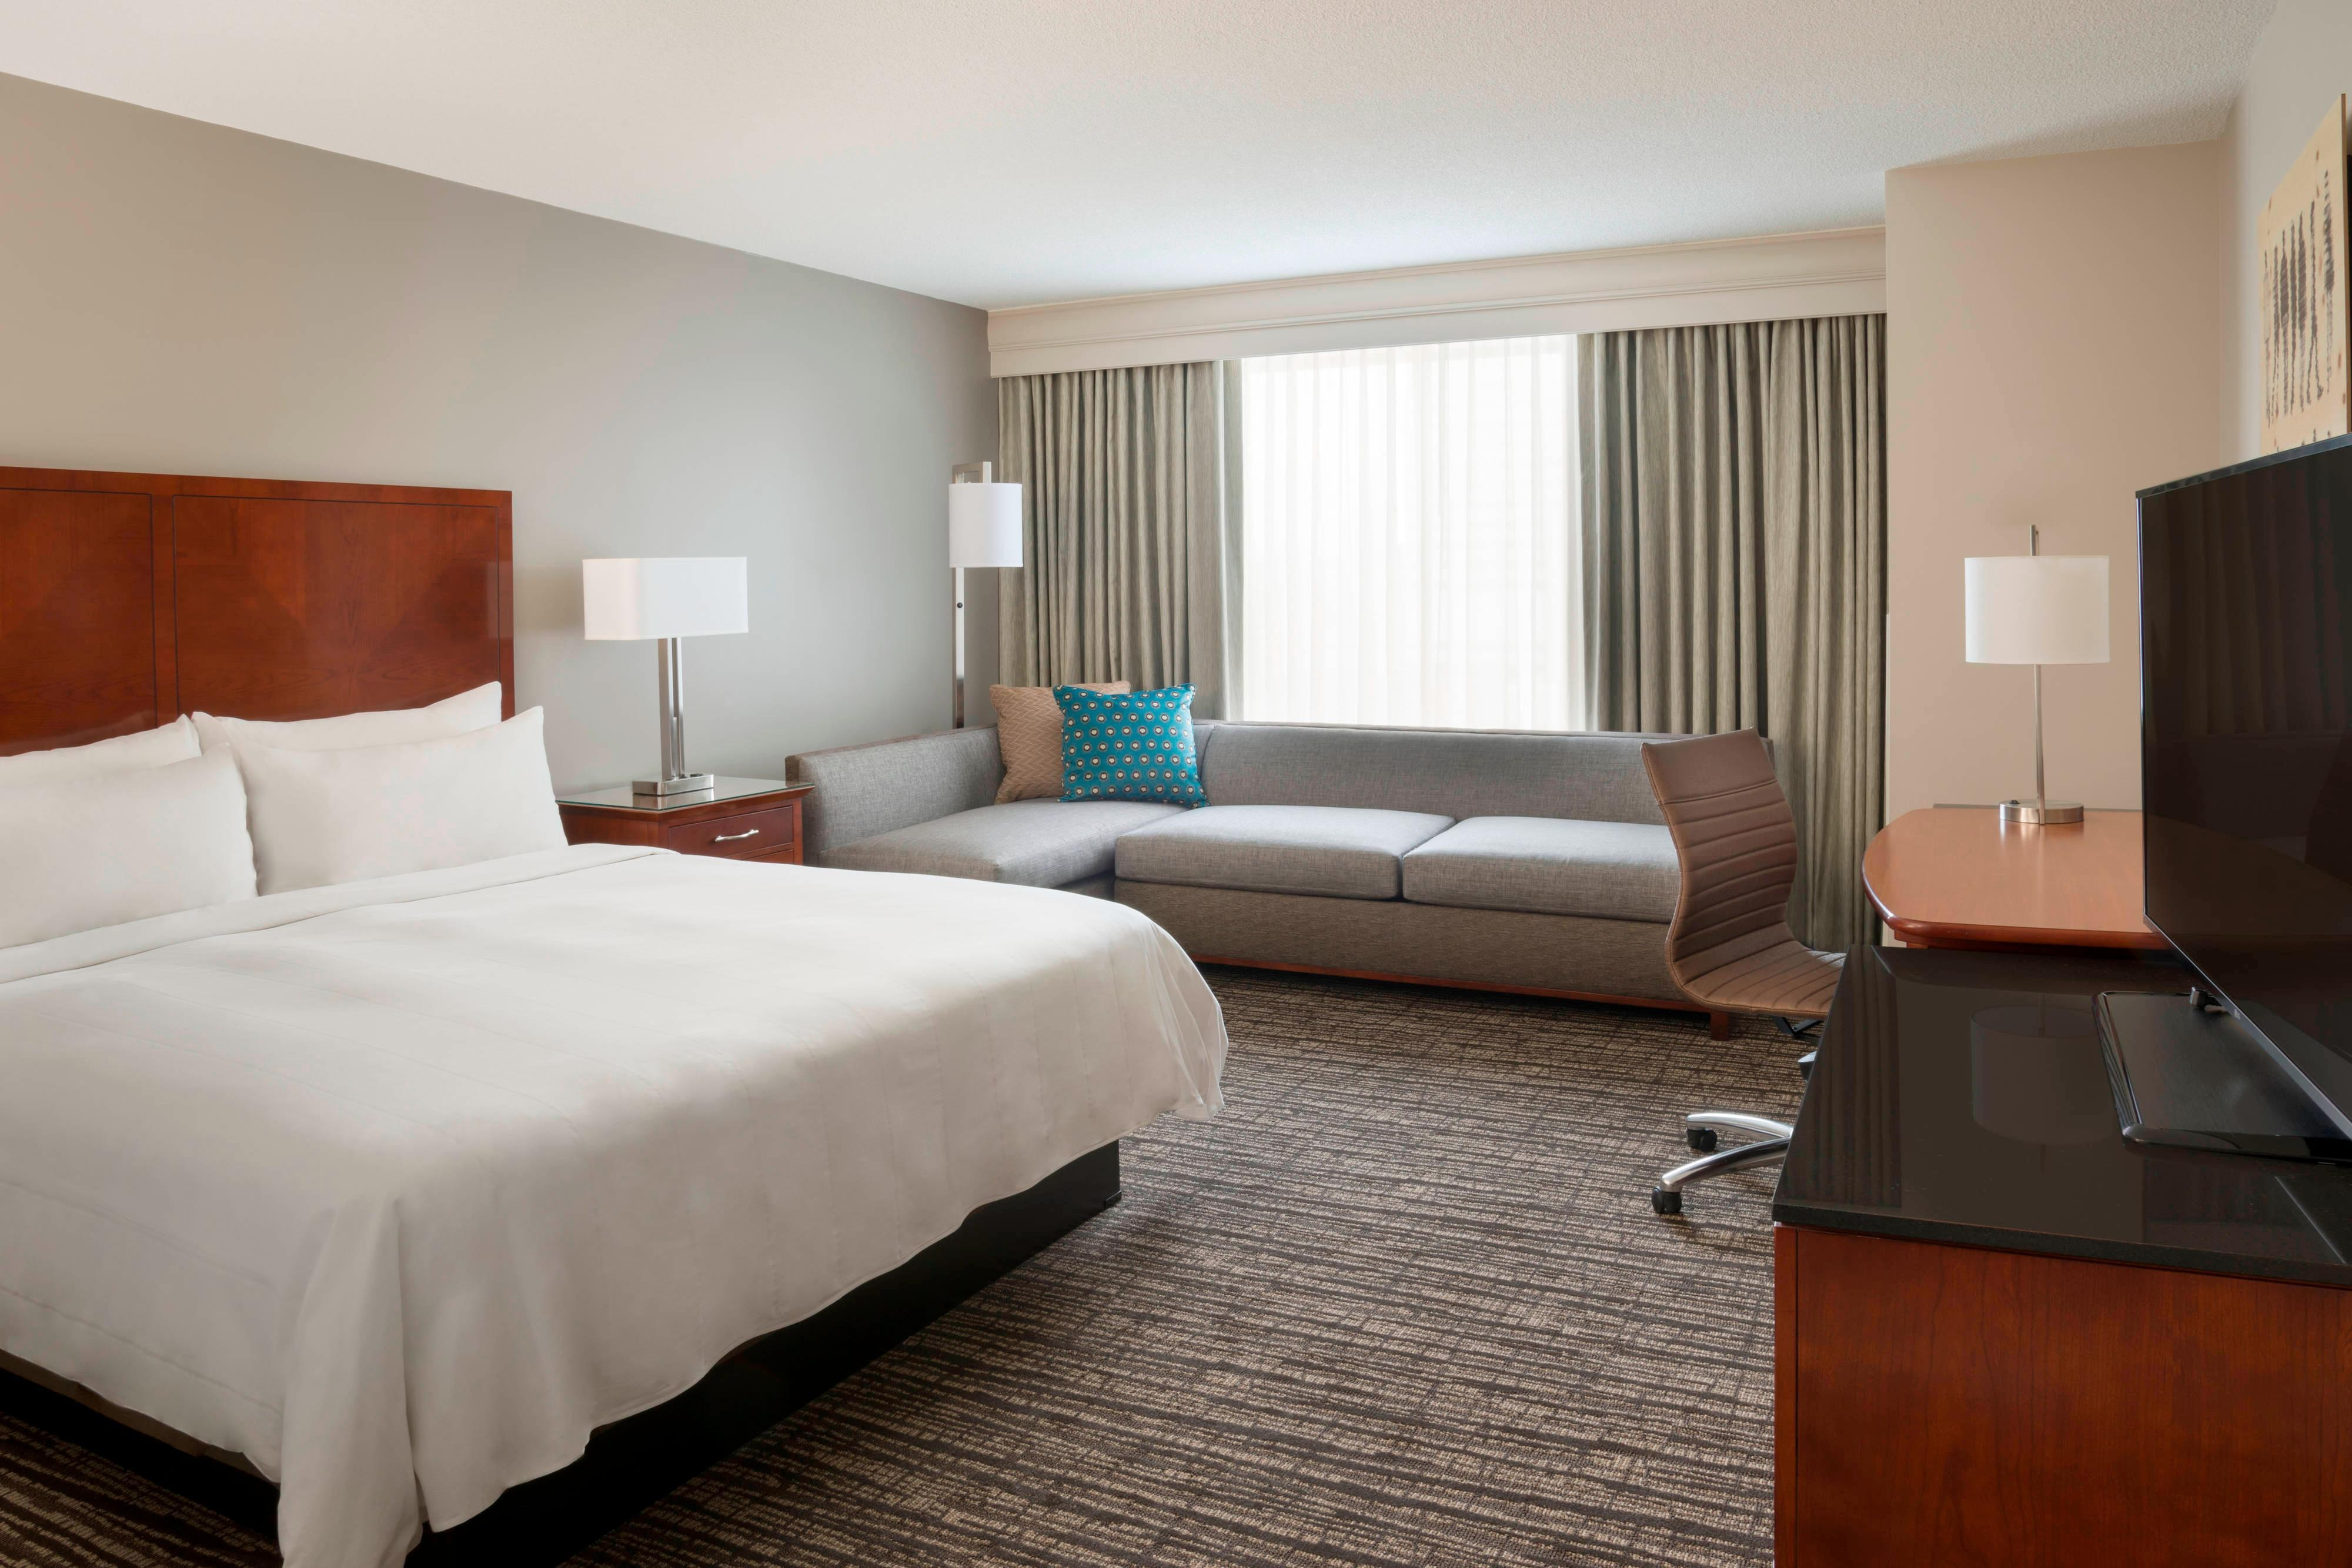 Hotel Rooms In Toronto Marriott Downtown At Cf Toronto Eaton Centre